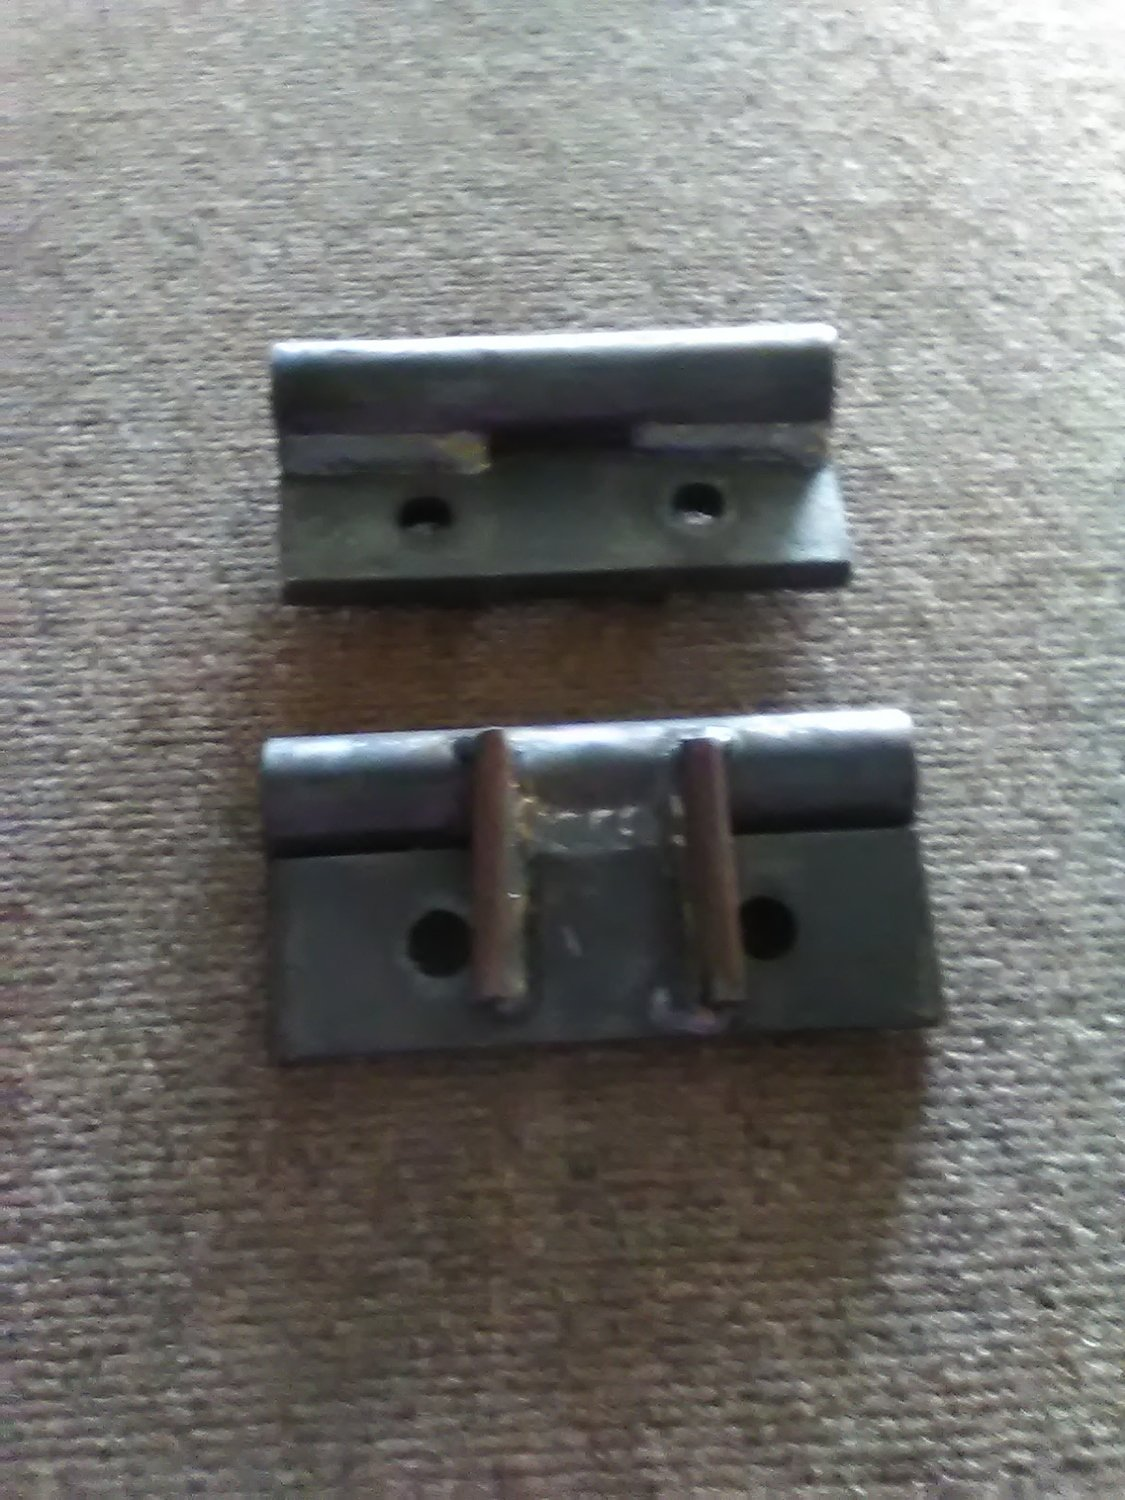 Buy farm gate Hinges- EZ Hinge Farm Gate| 2